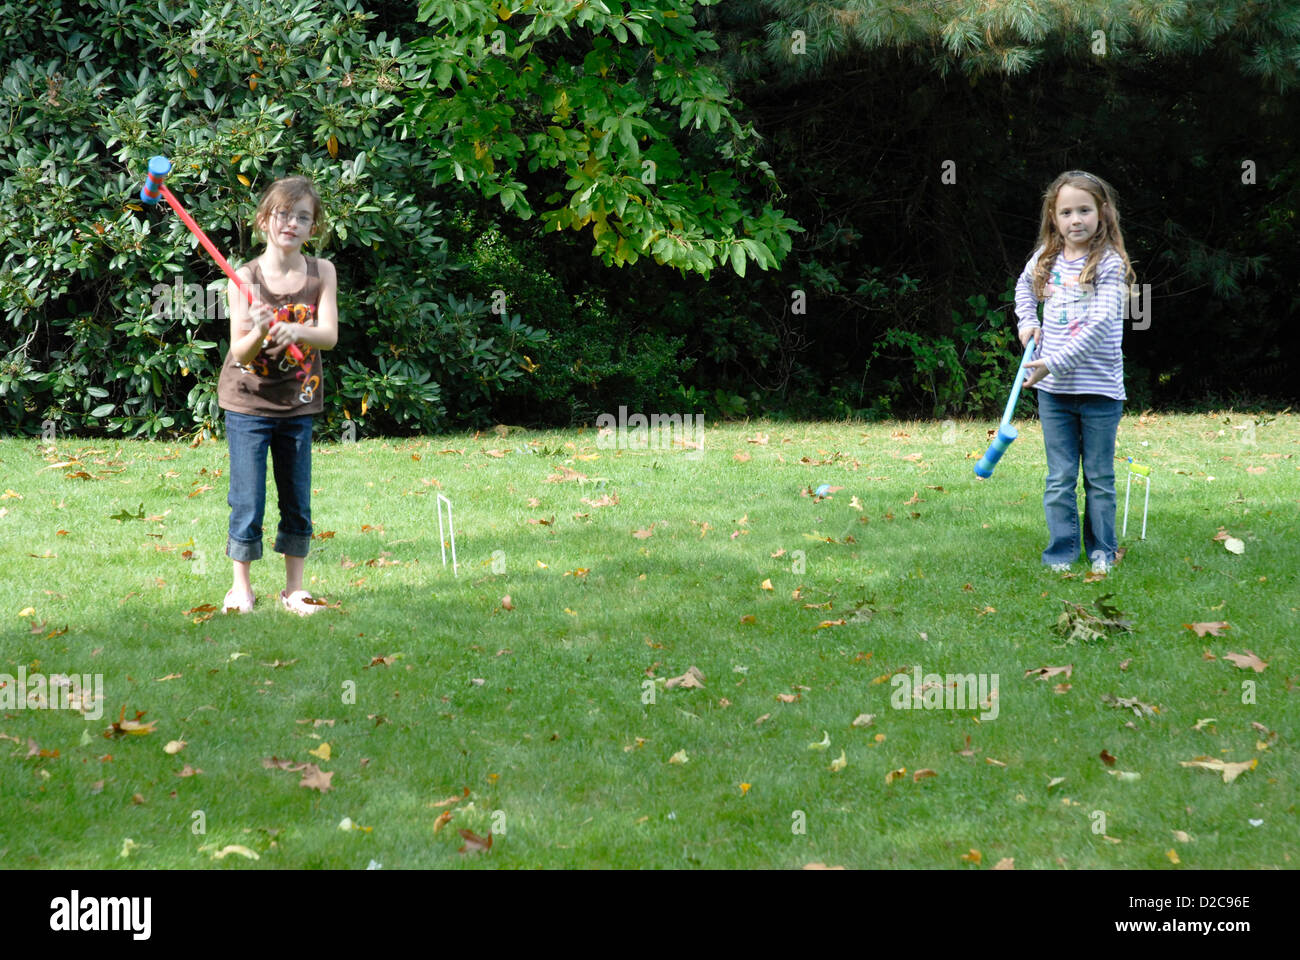 7-Year Old Girls, Winchester, Massachusetts, Playing Croquet - Stock Image